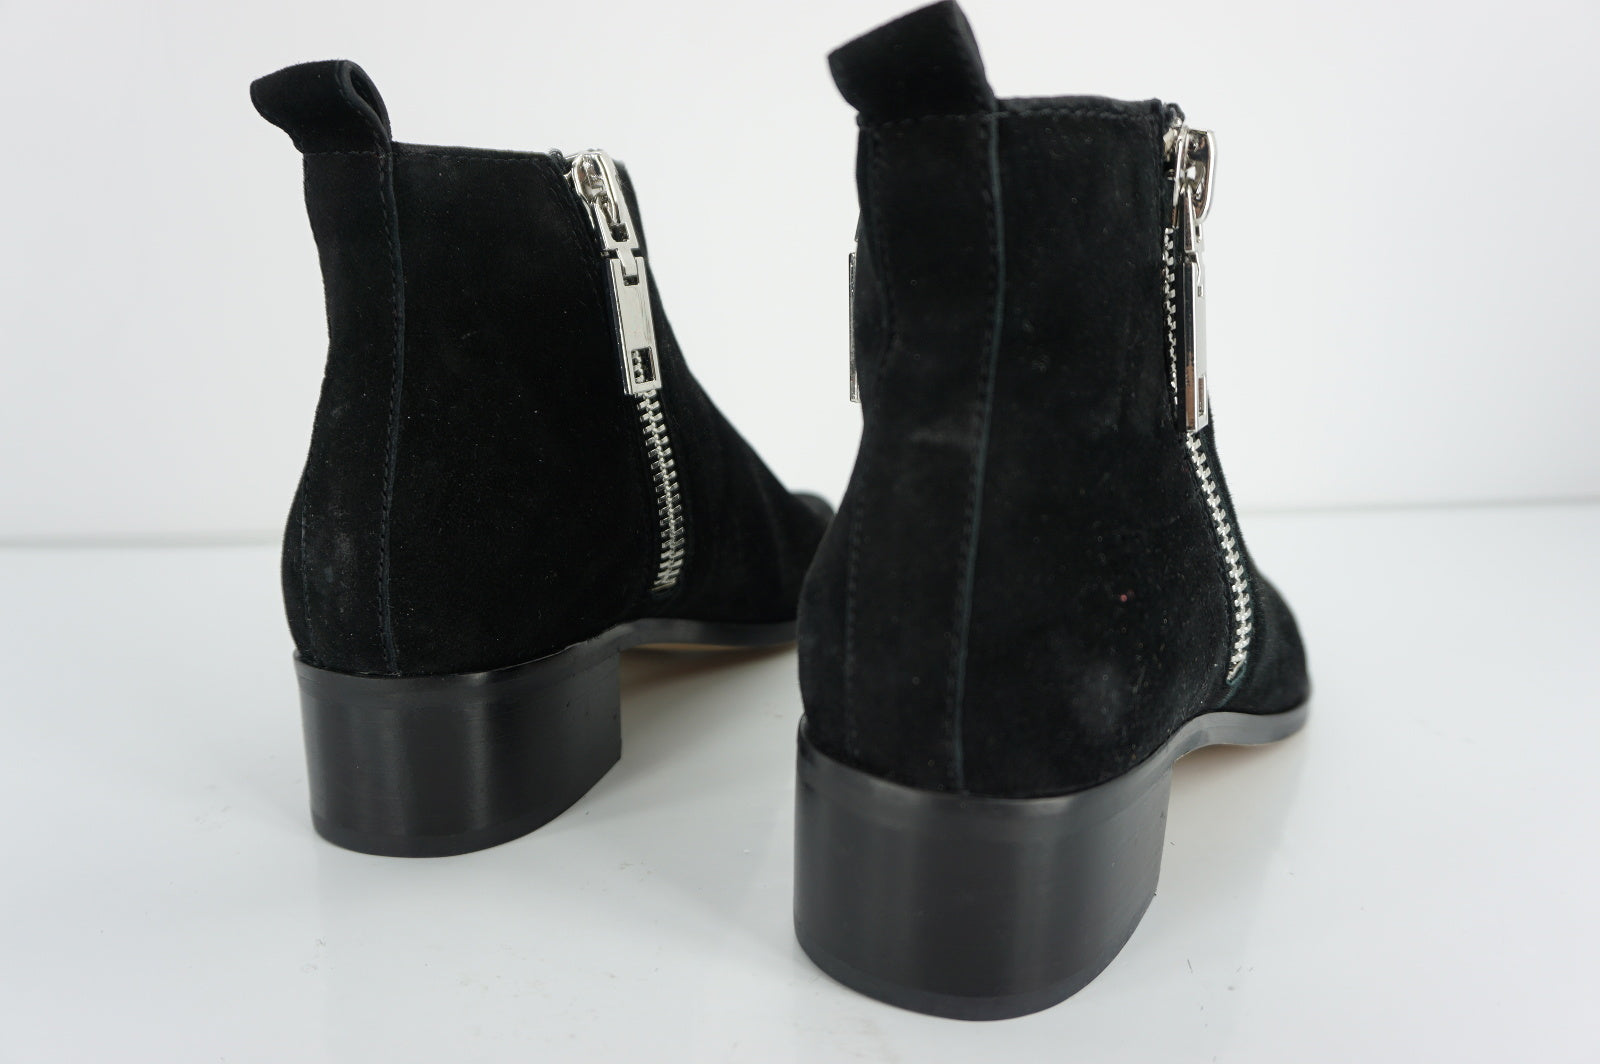 Dolce Vita Marra Double Zip Black Suede ankle booties size 6.5 New $160